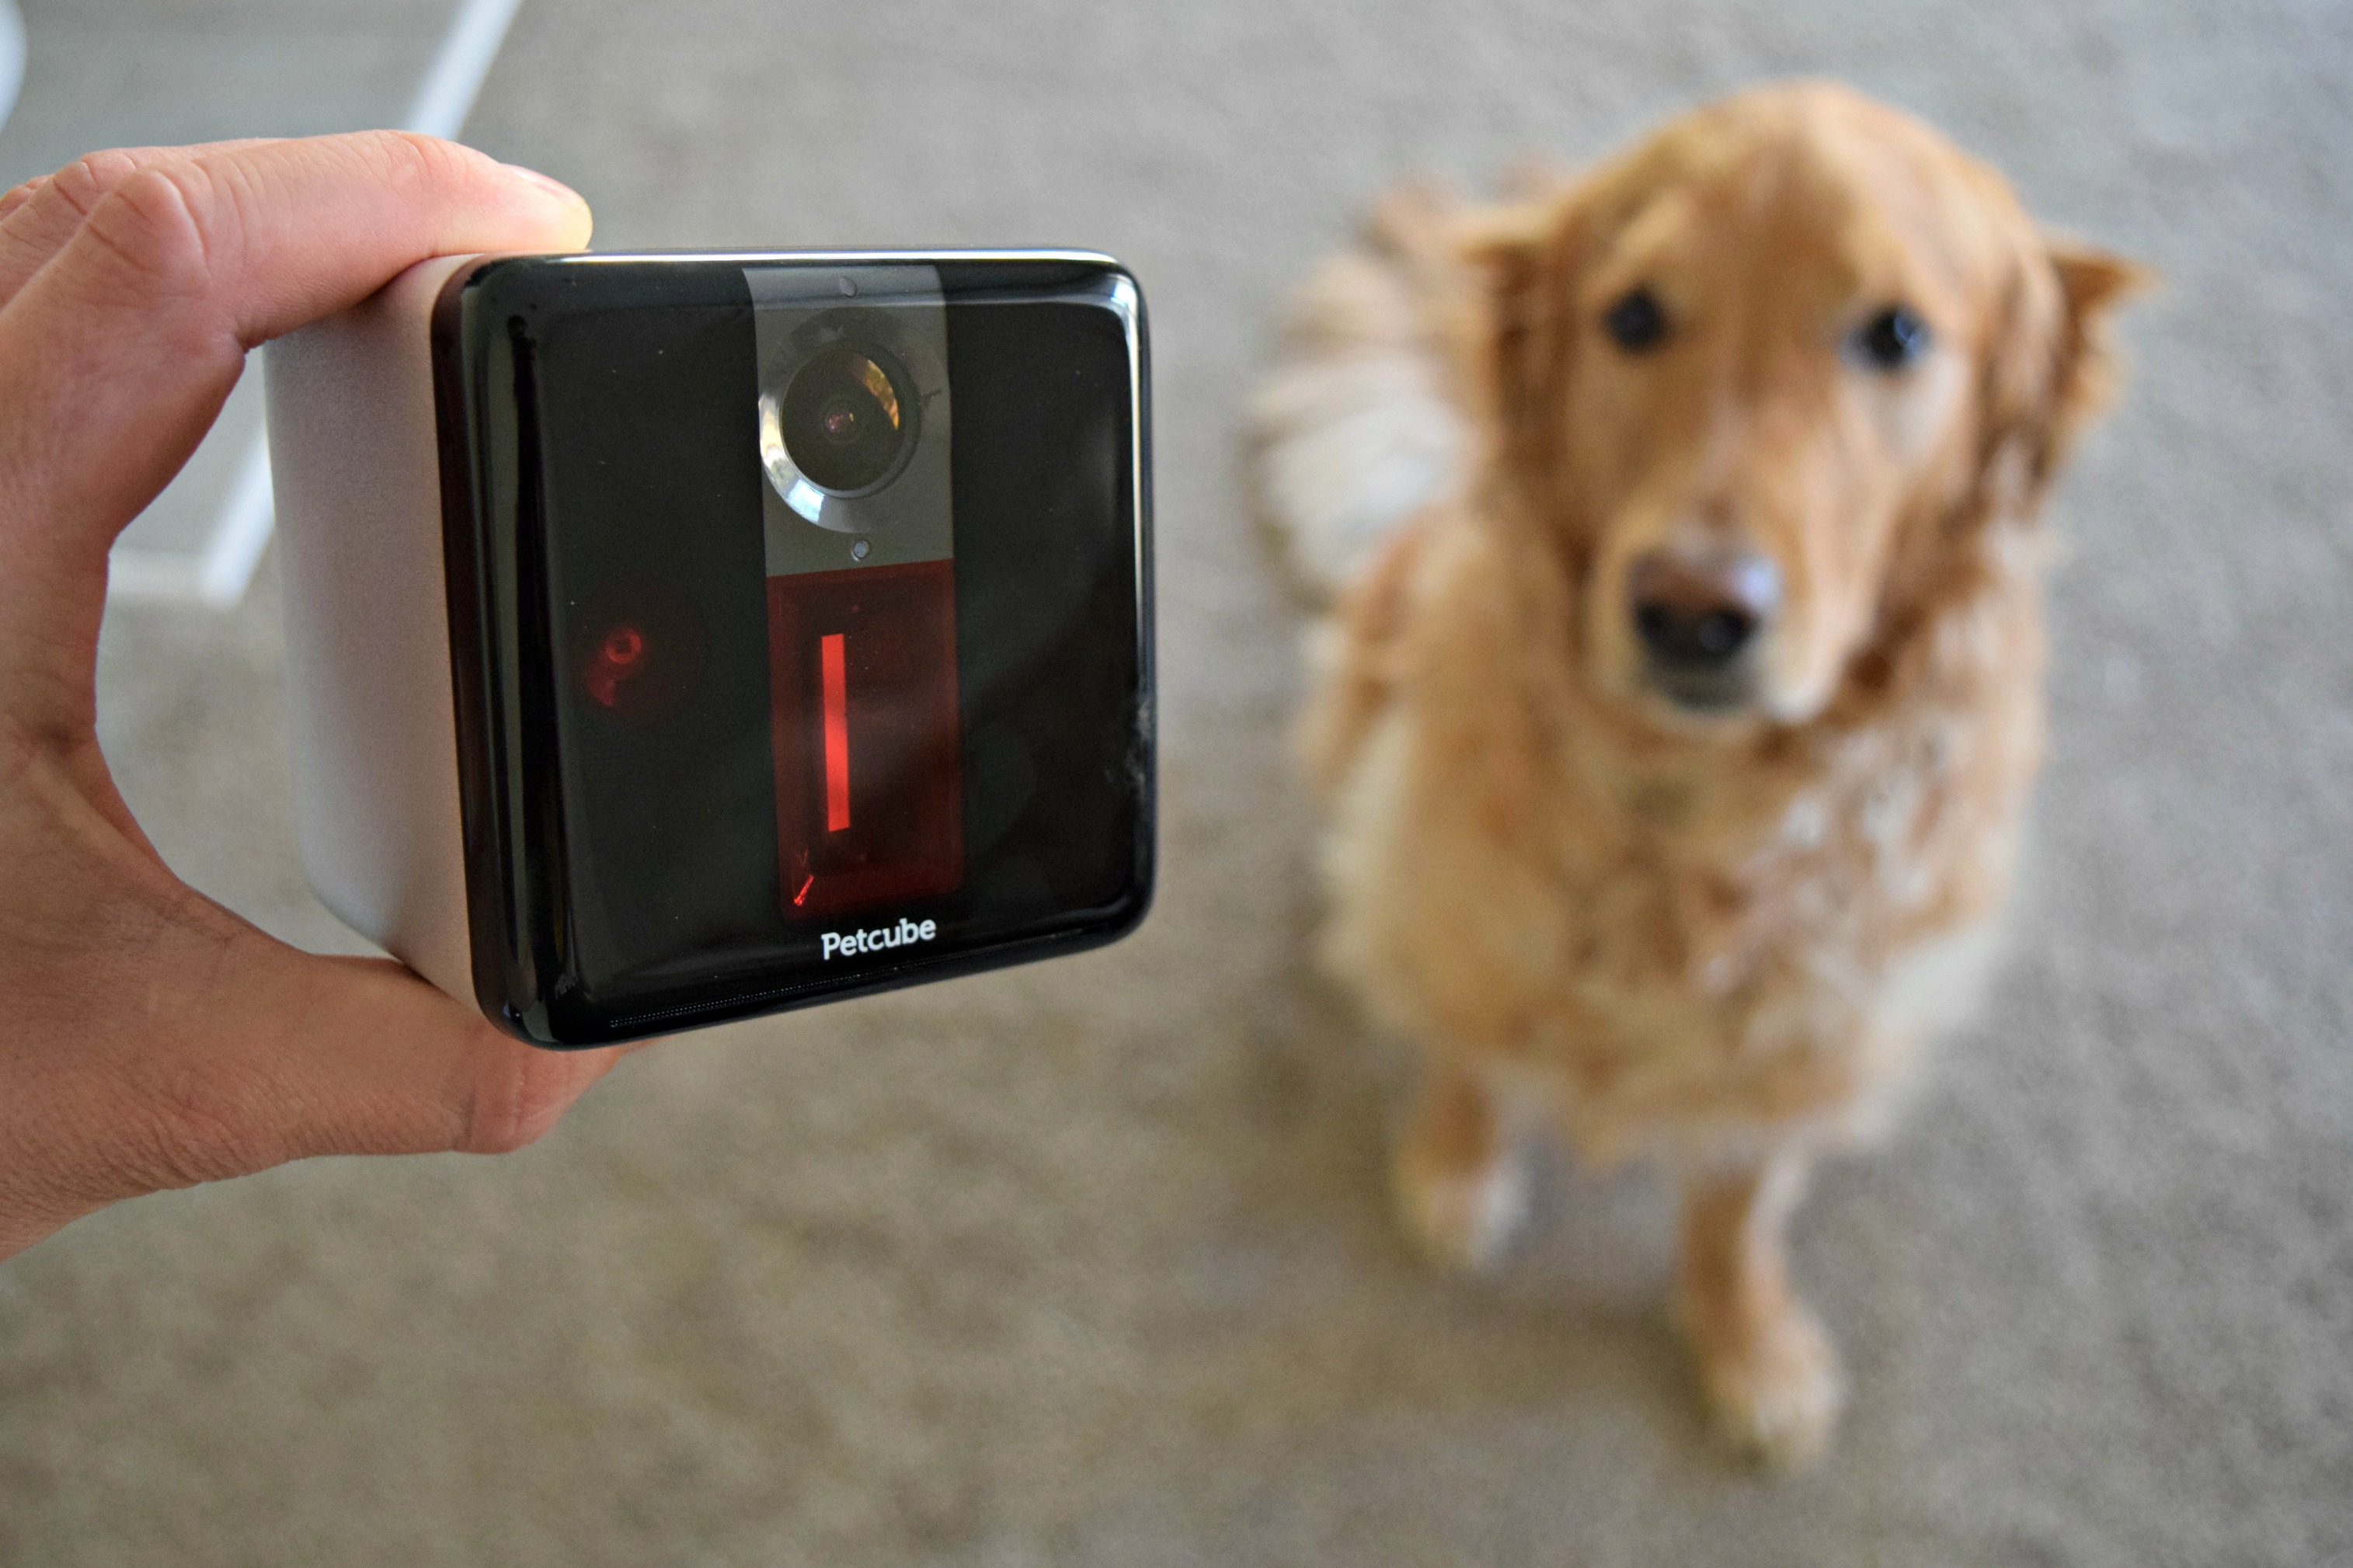 Petcube Review - Interacting With Your Pets When You're Not at Home!